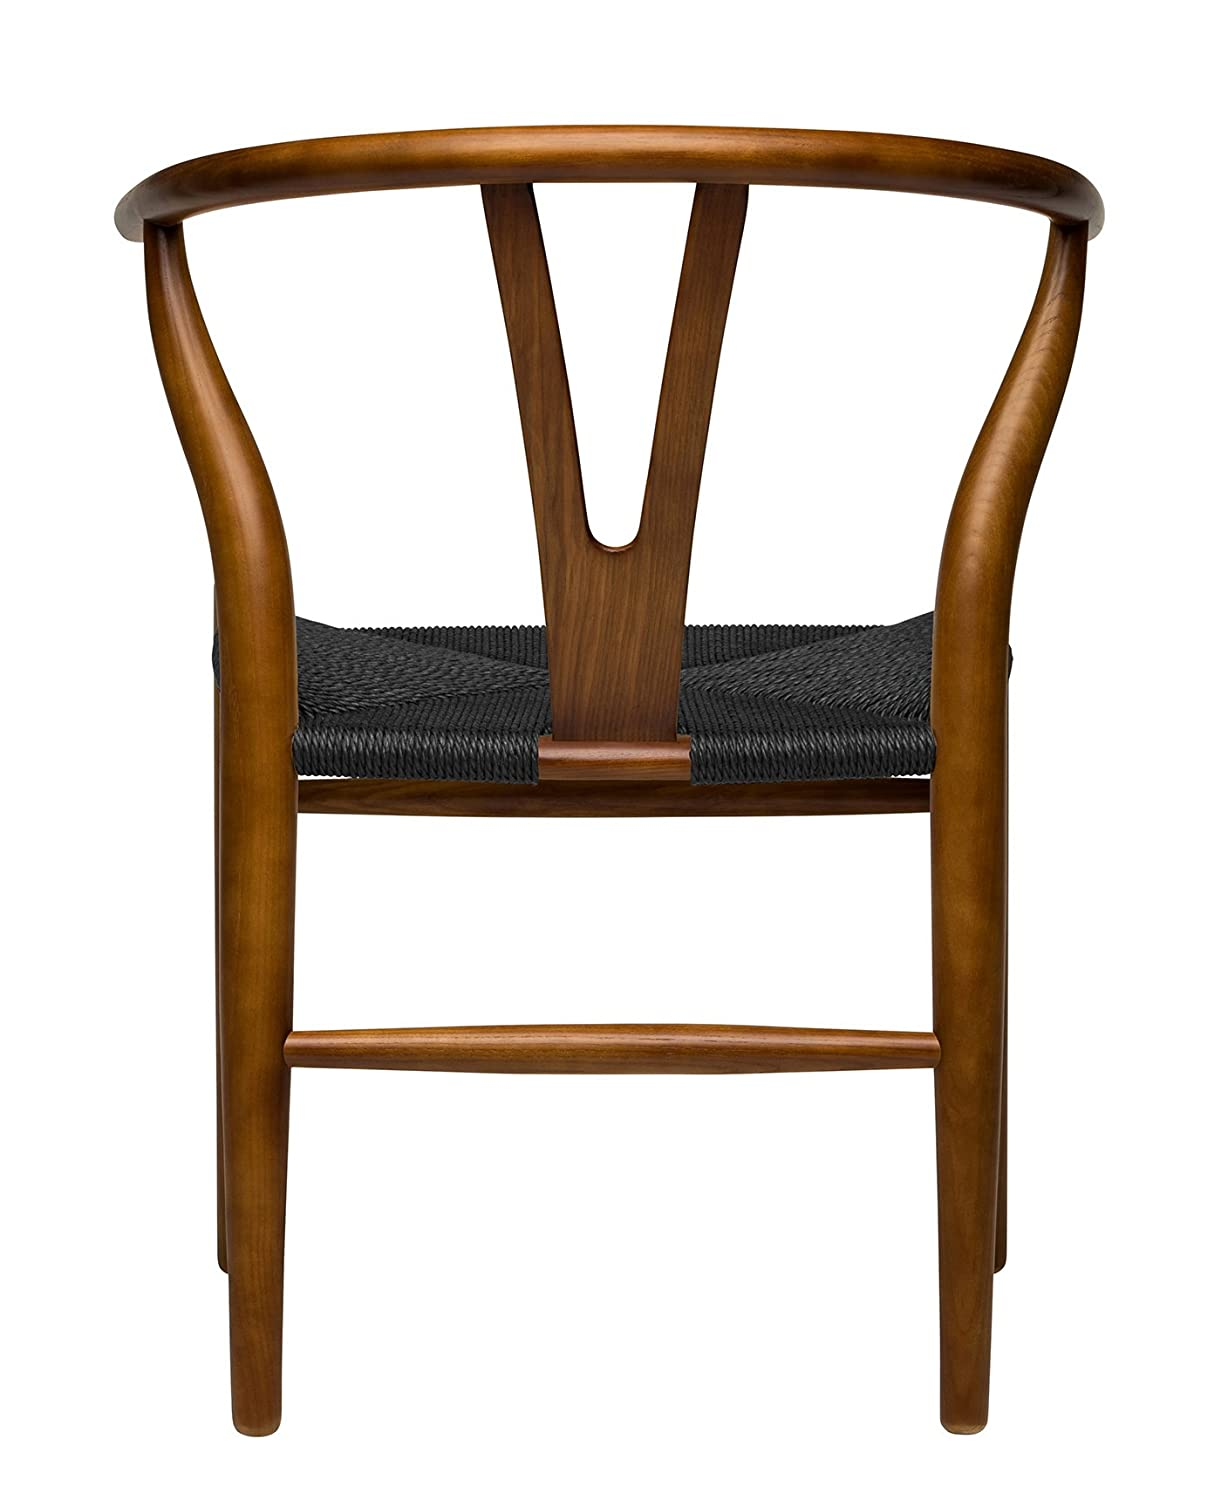 Amazon com hans wegner wishbone style woven seat chair walnut with black cord kitchen dining